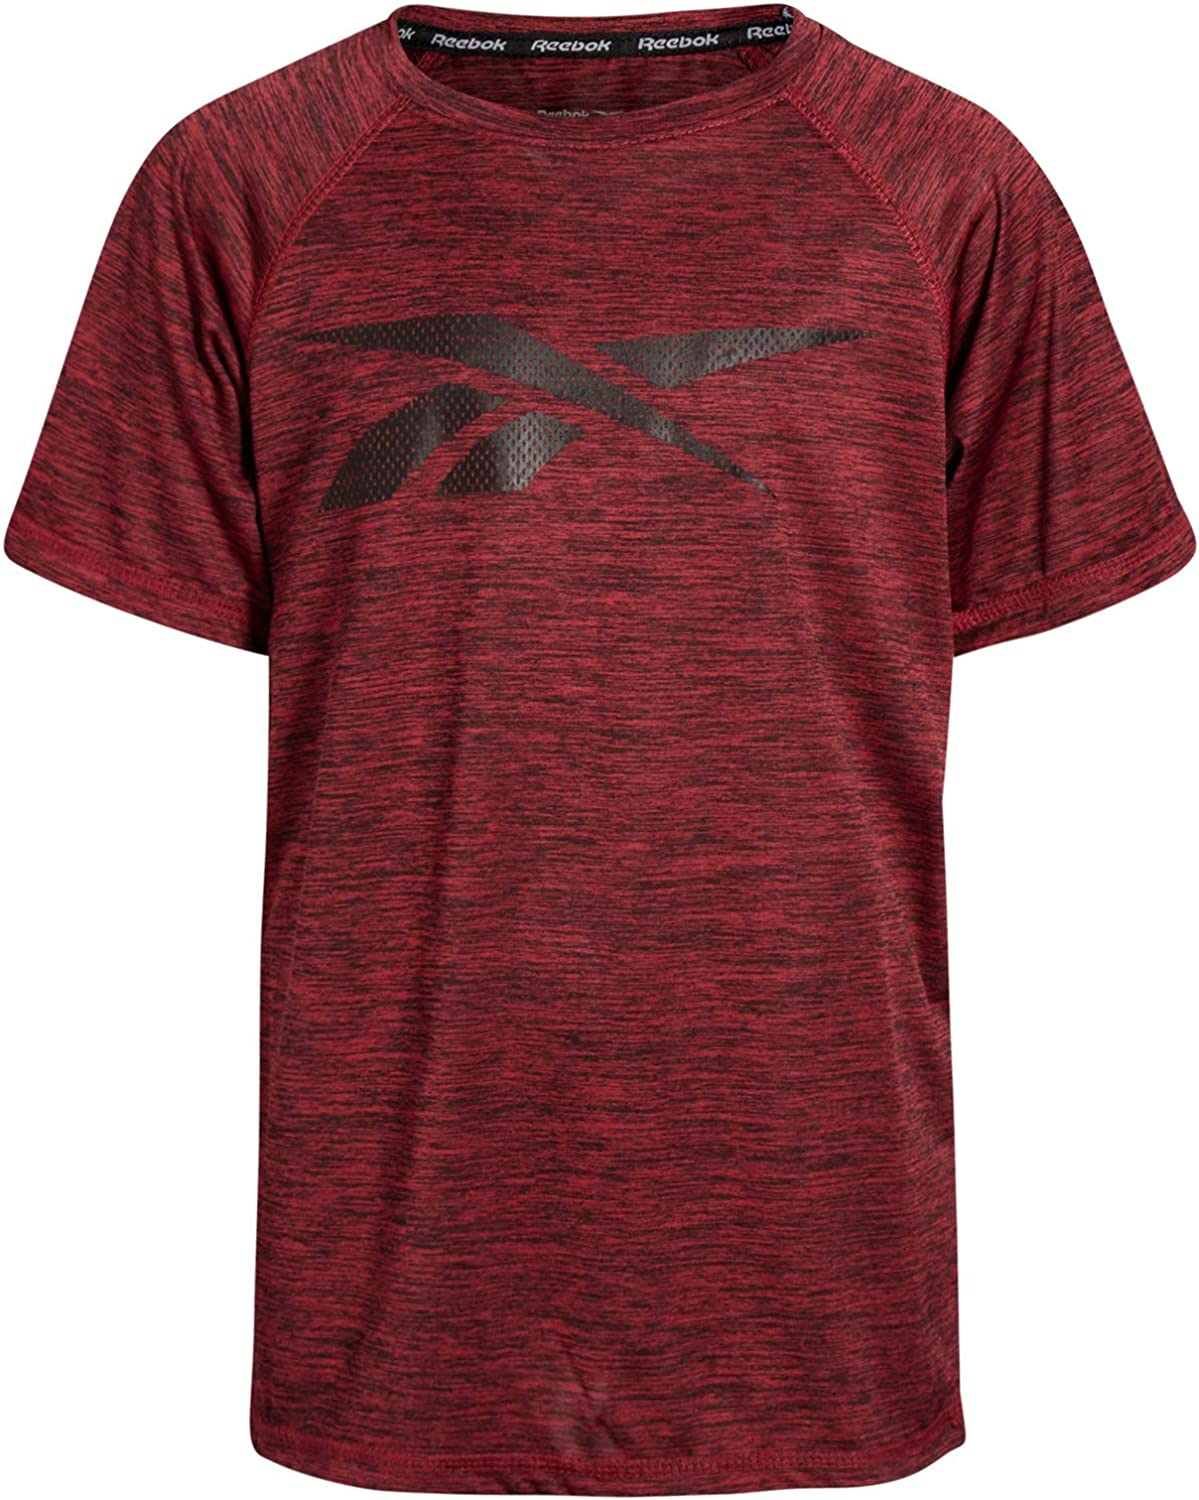 Reebok Boys Quick Dry Breathable Athletic Performance Sports T-Shirt